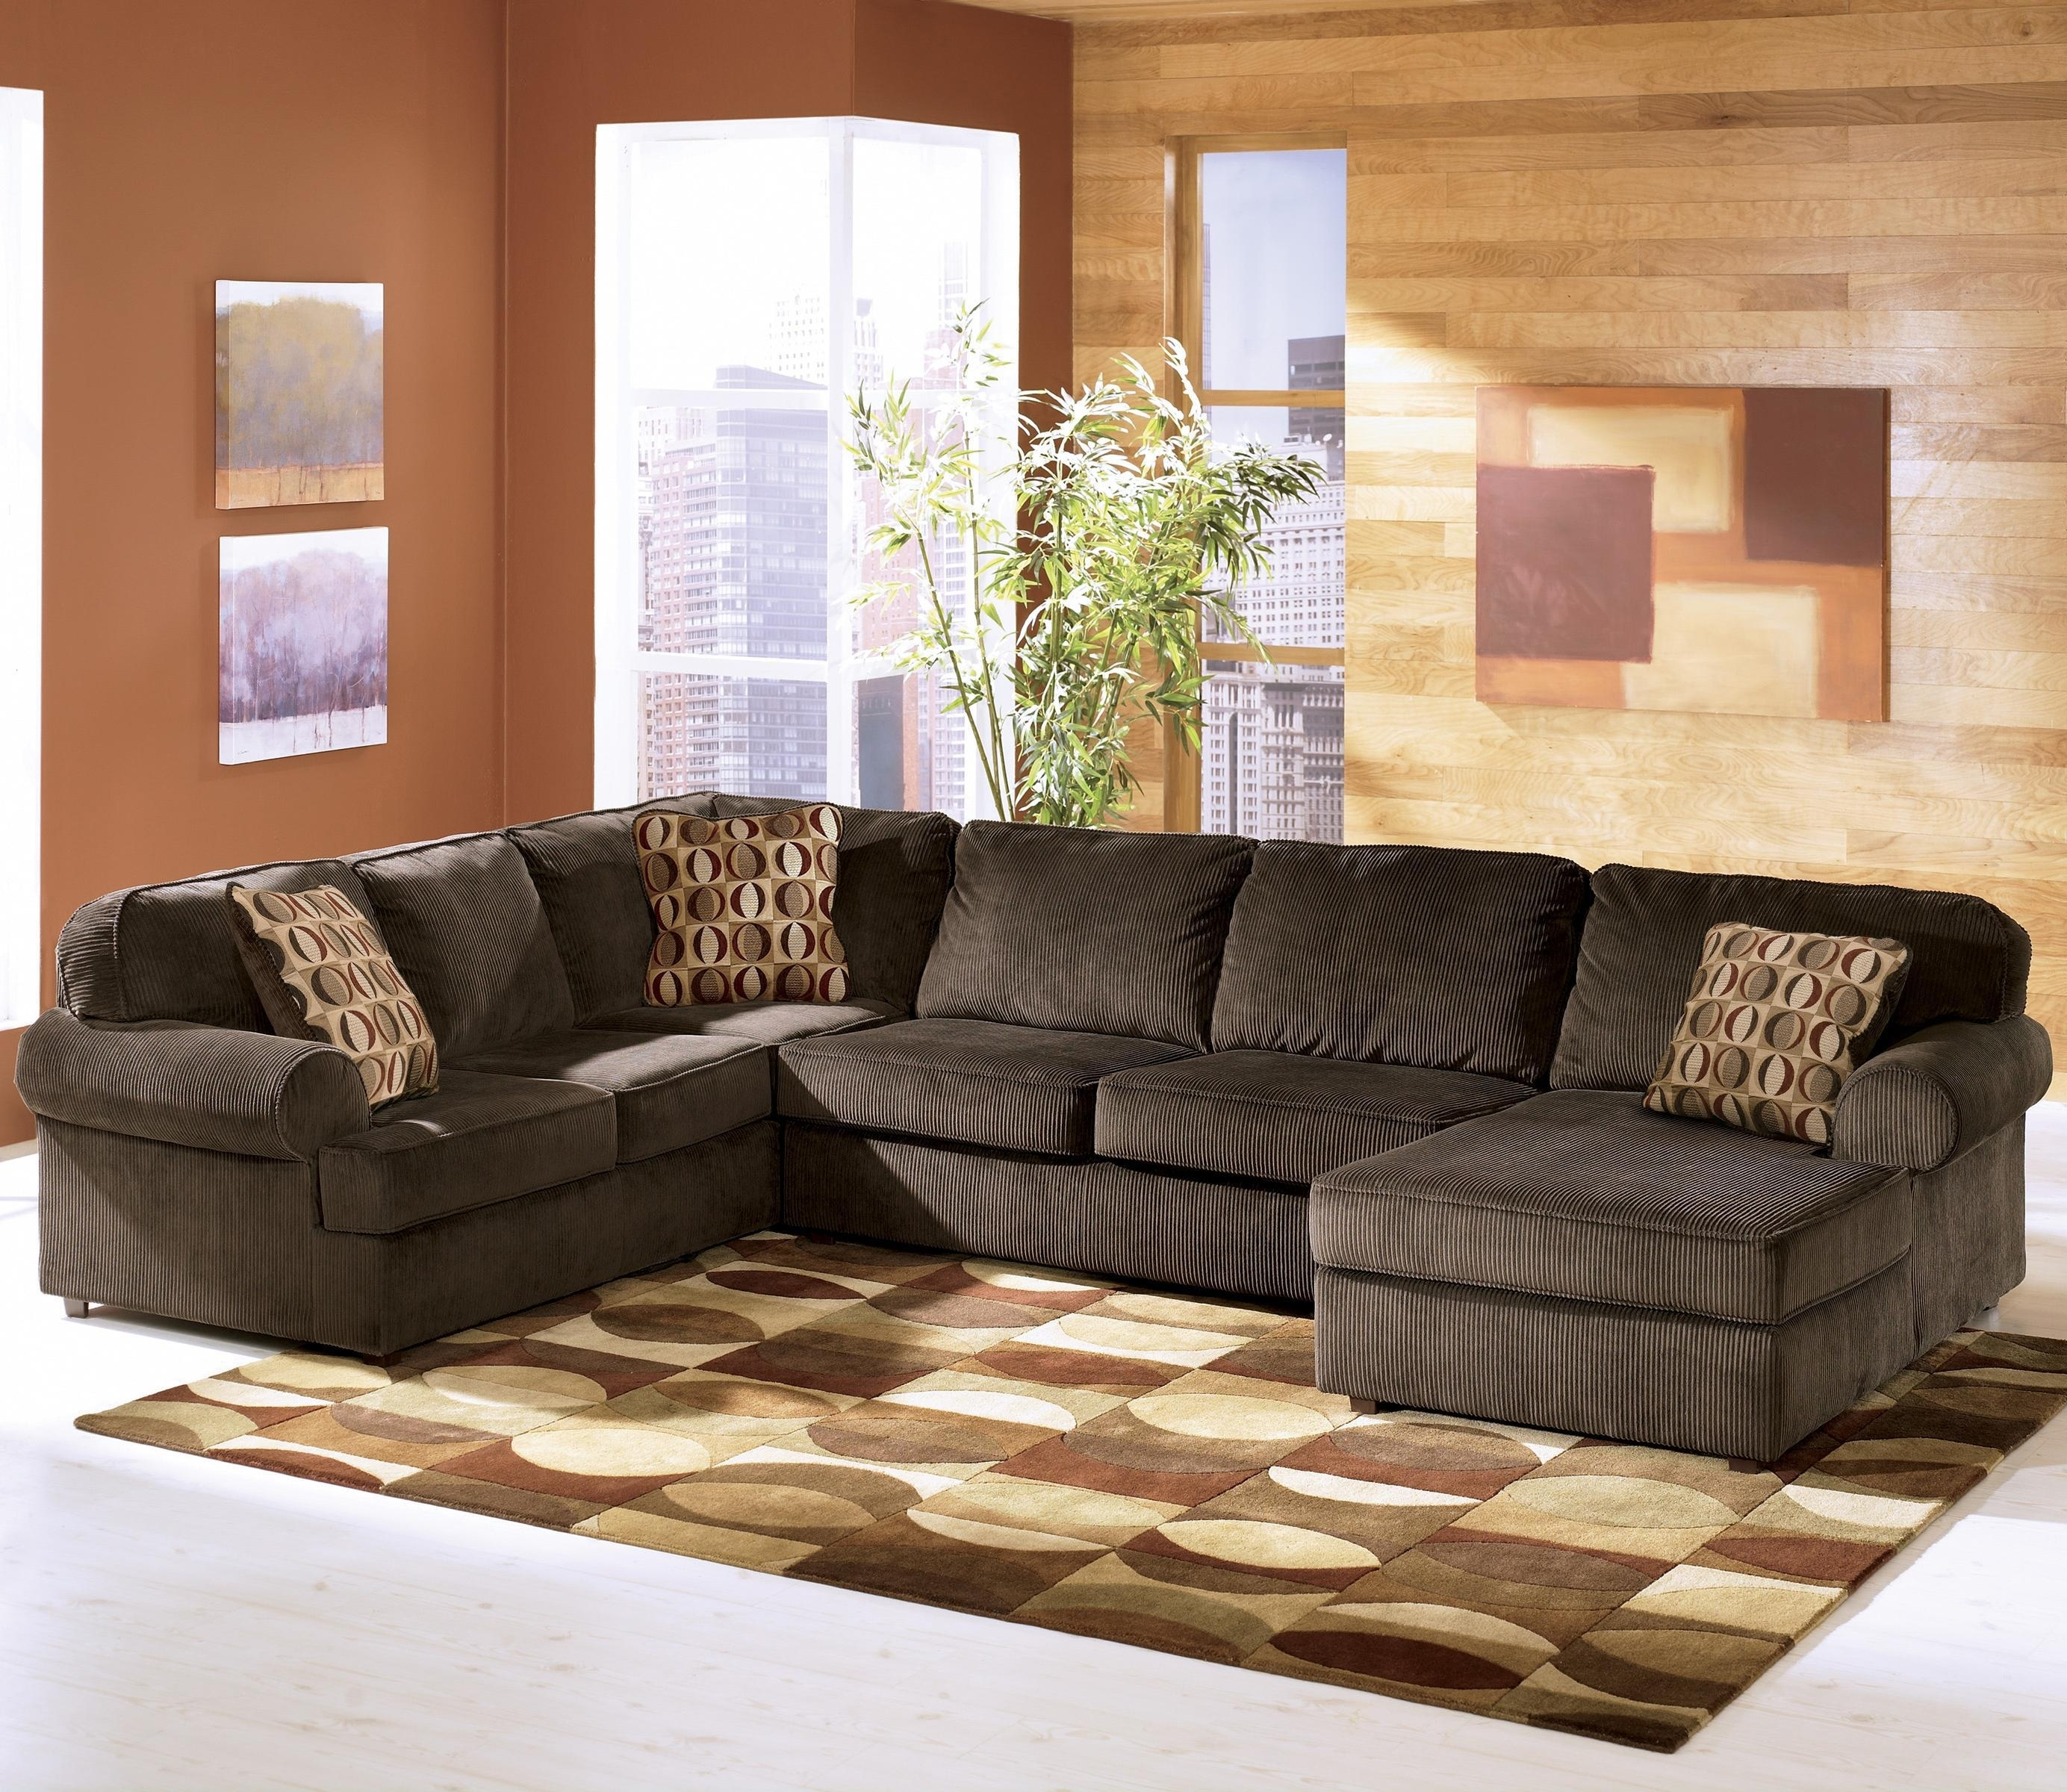 Ashley Furniture Vista – Chocolate Casual 3 Piece Sectional With Inside 2017 Ashley Furniture Chaise Sofas (View 7 of 15)